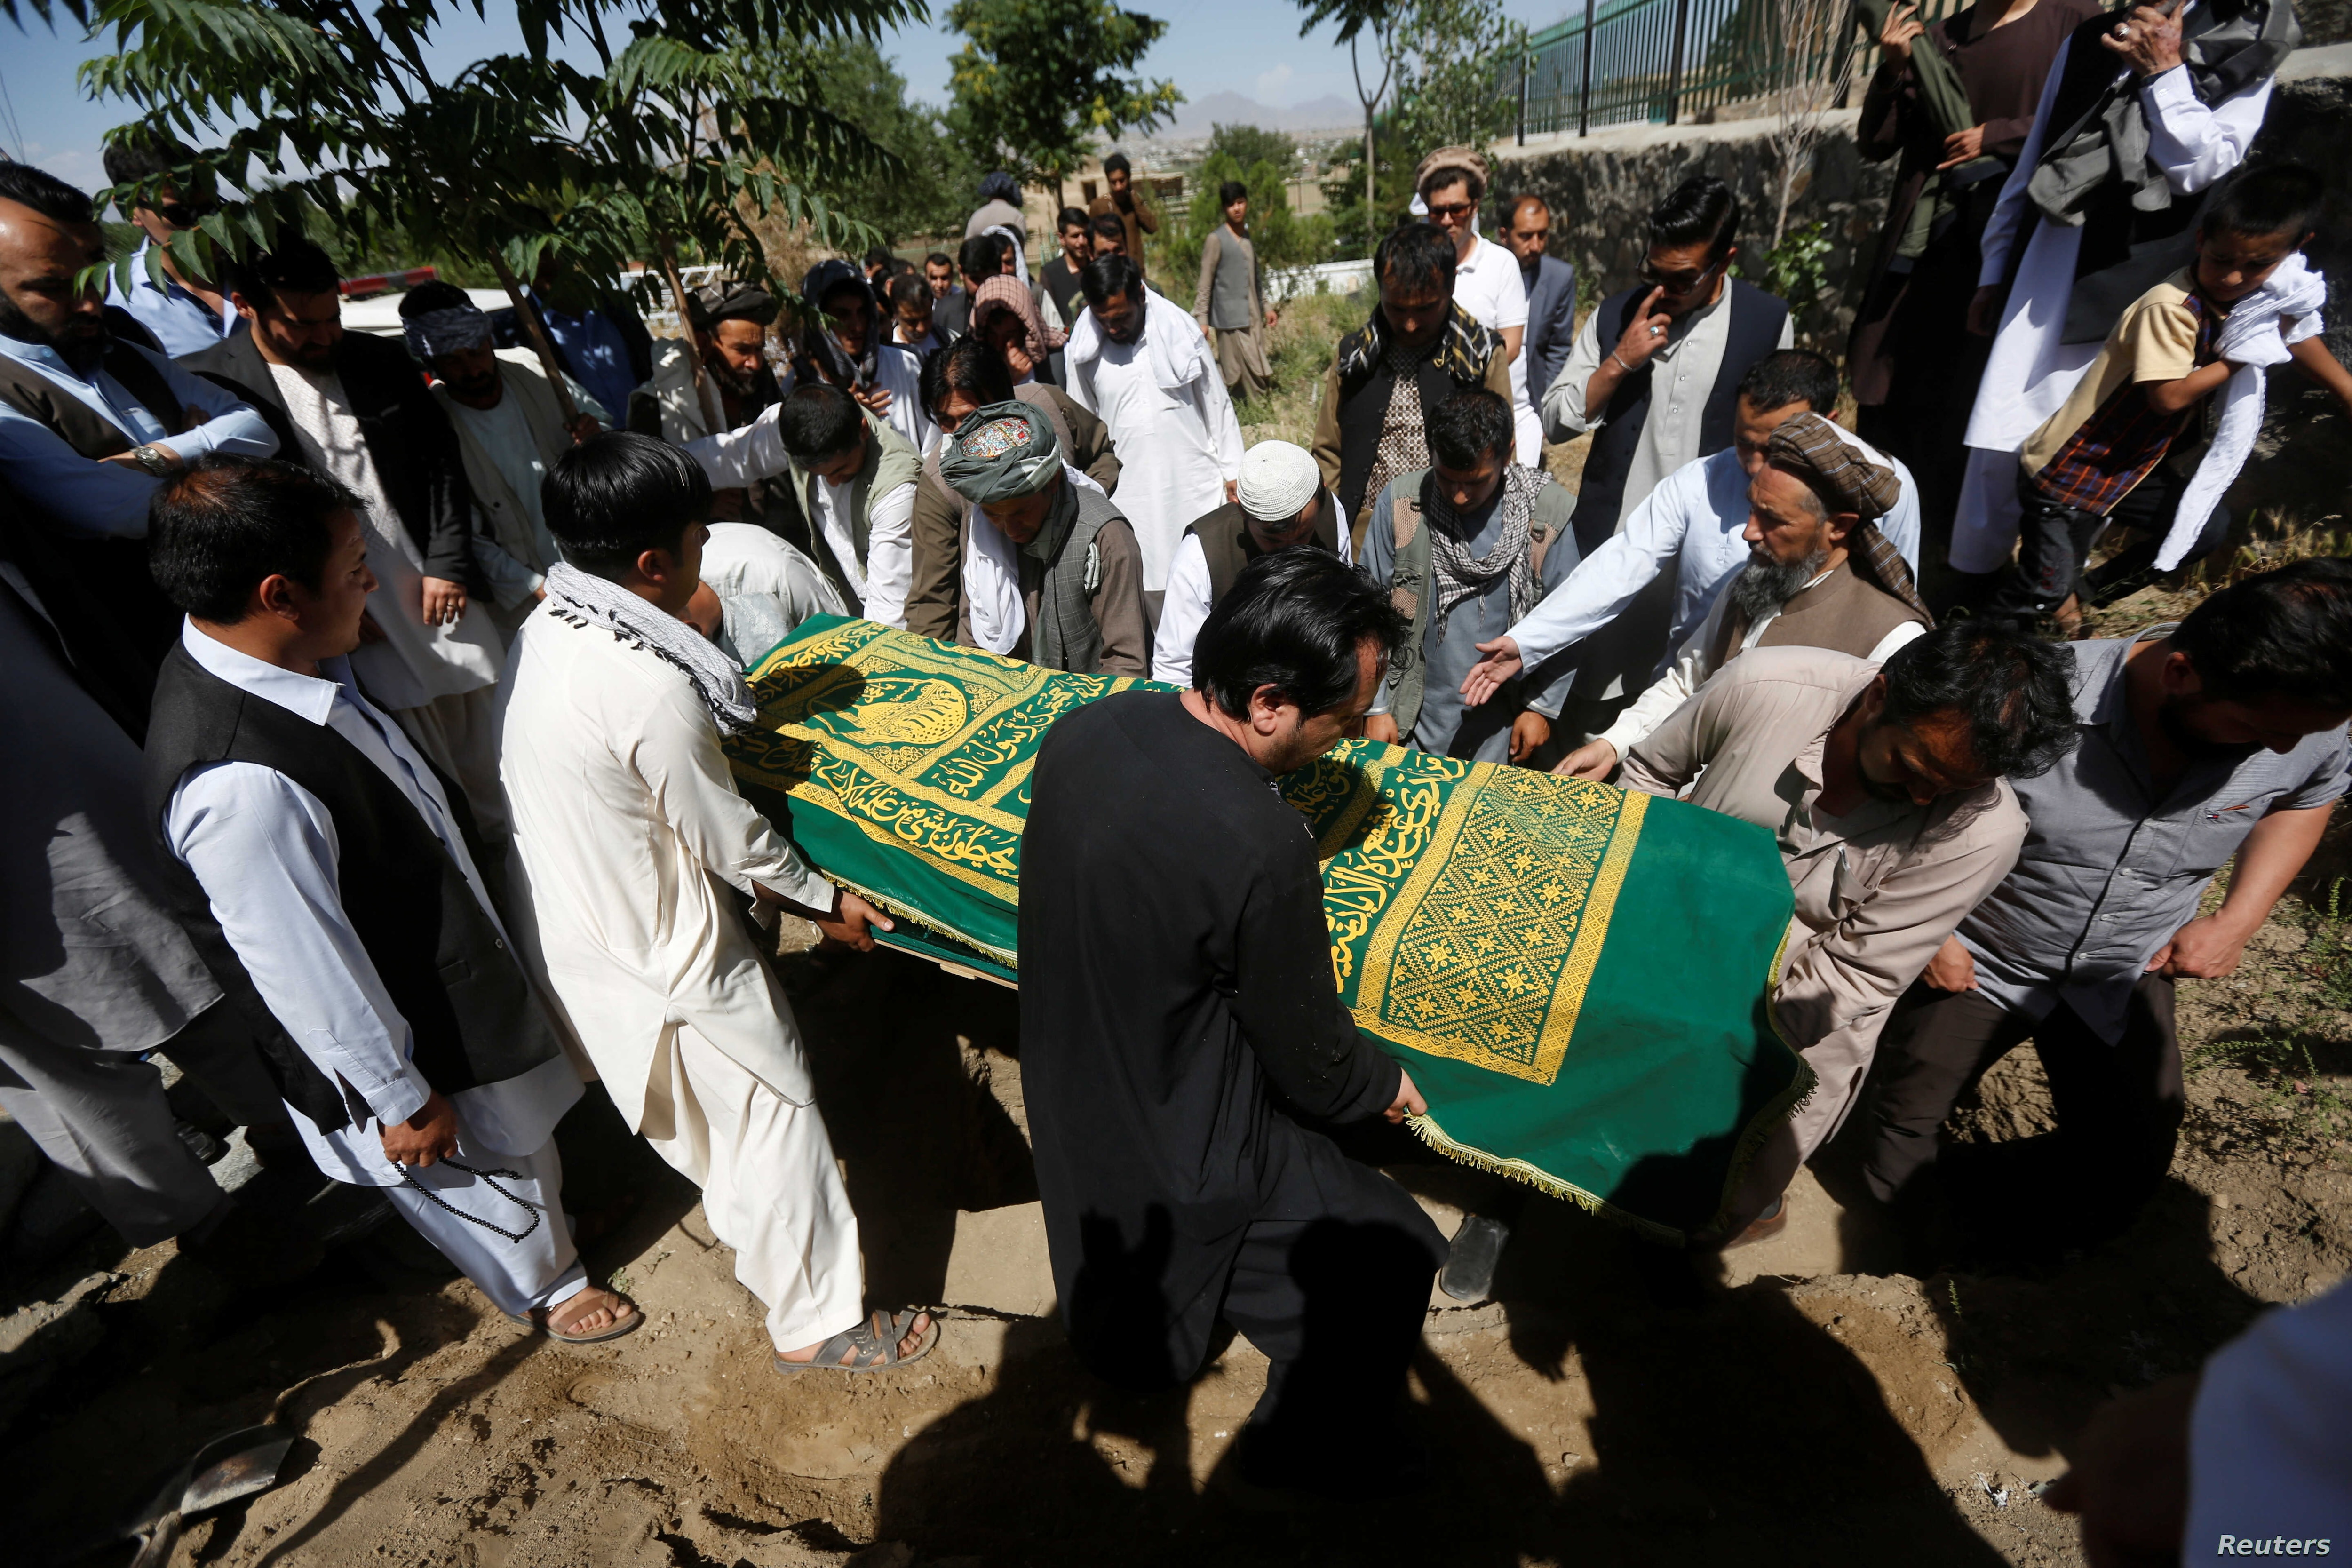 FILE - Afghans take part in the burial of an Afghan journalist in Kabul, Afghanistan June 7, 2016. A roadside bomb killed one journalist and wounded another Friday. 2016 is the deadliest year yet for journalists in Afghanistan.